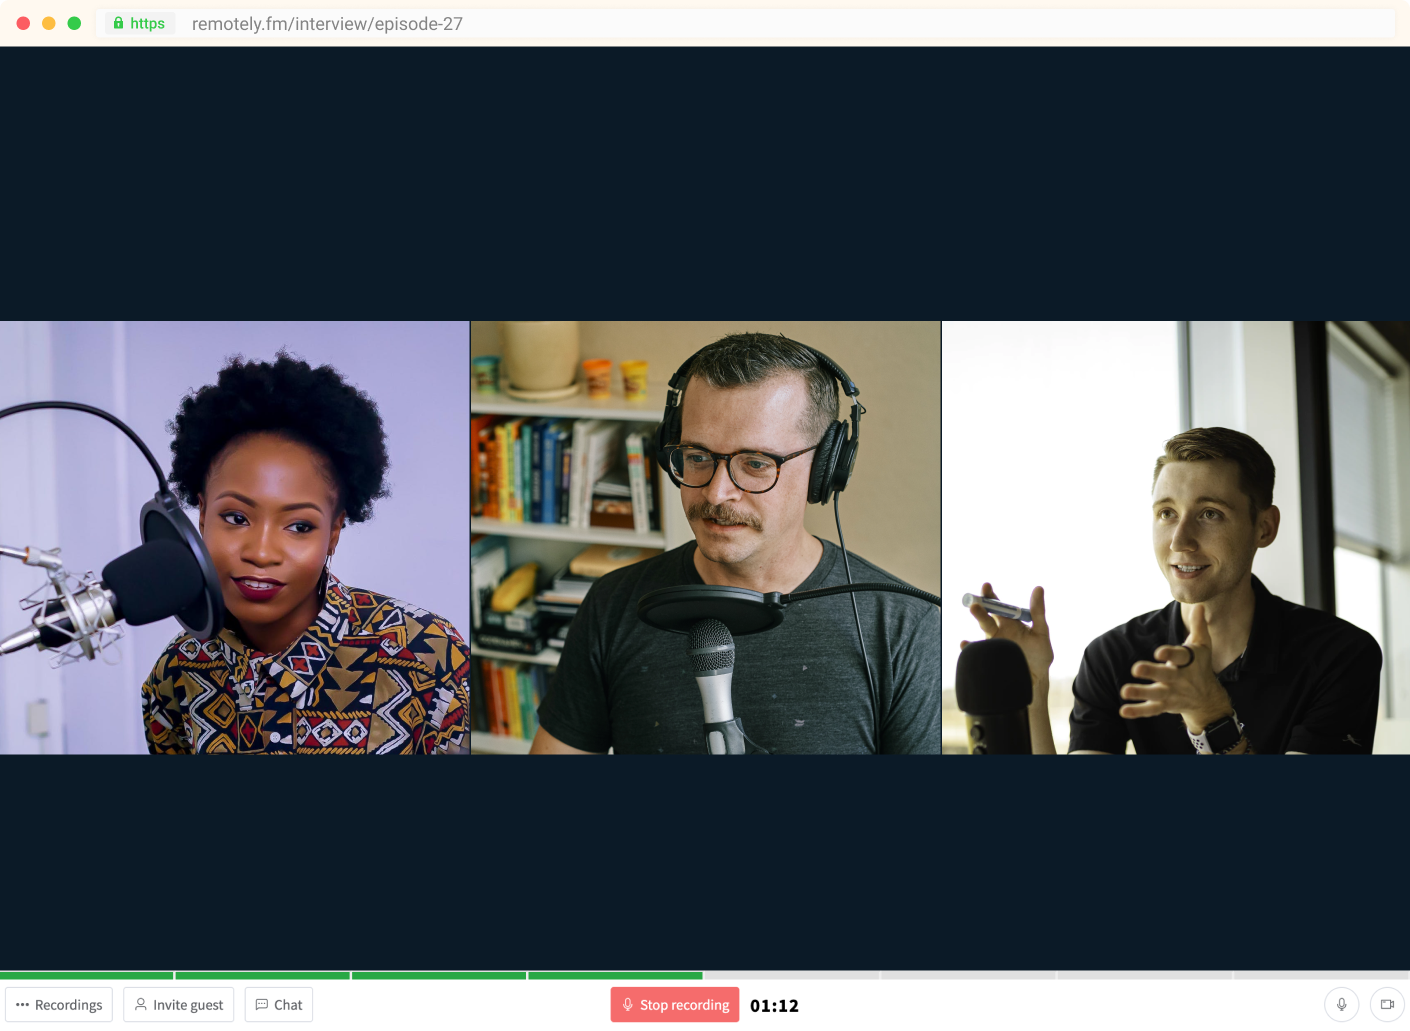 Showcase of the remote interview recording platform